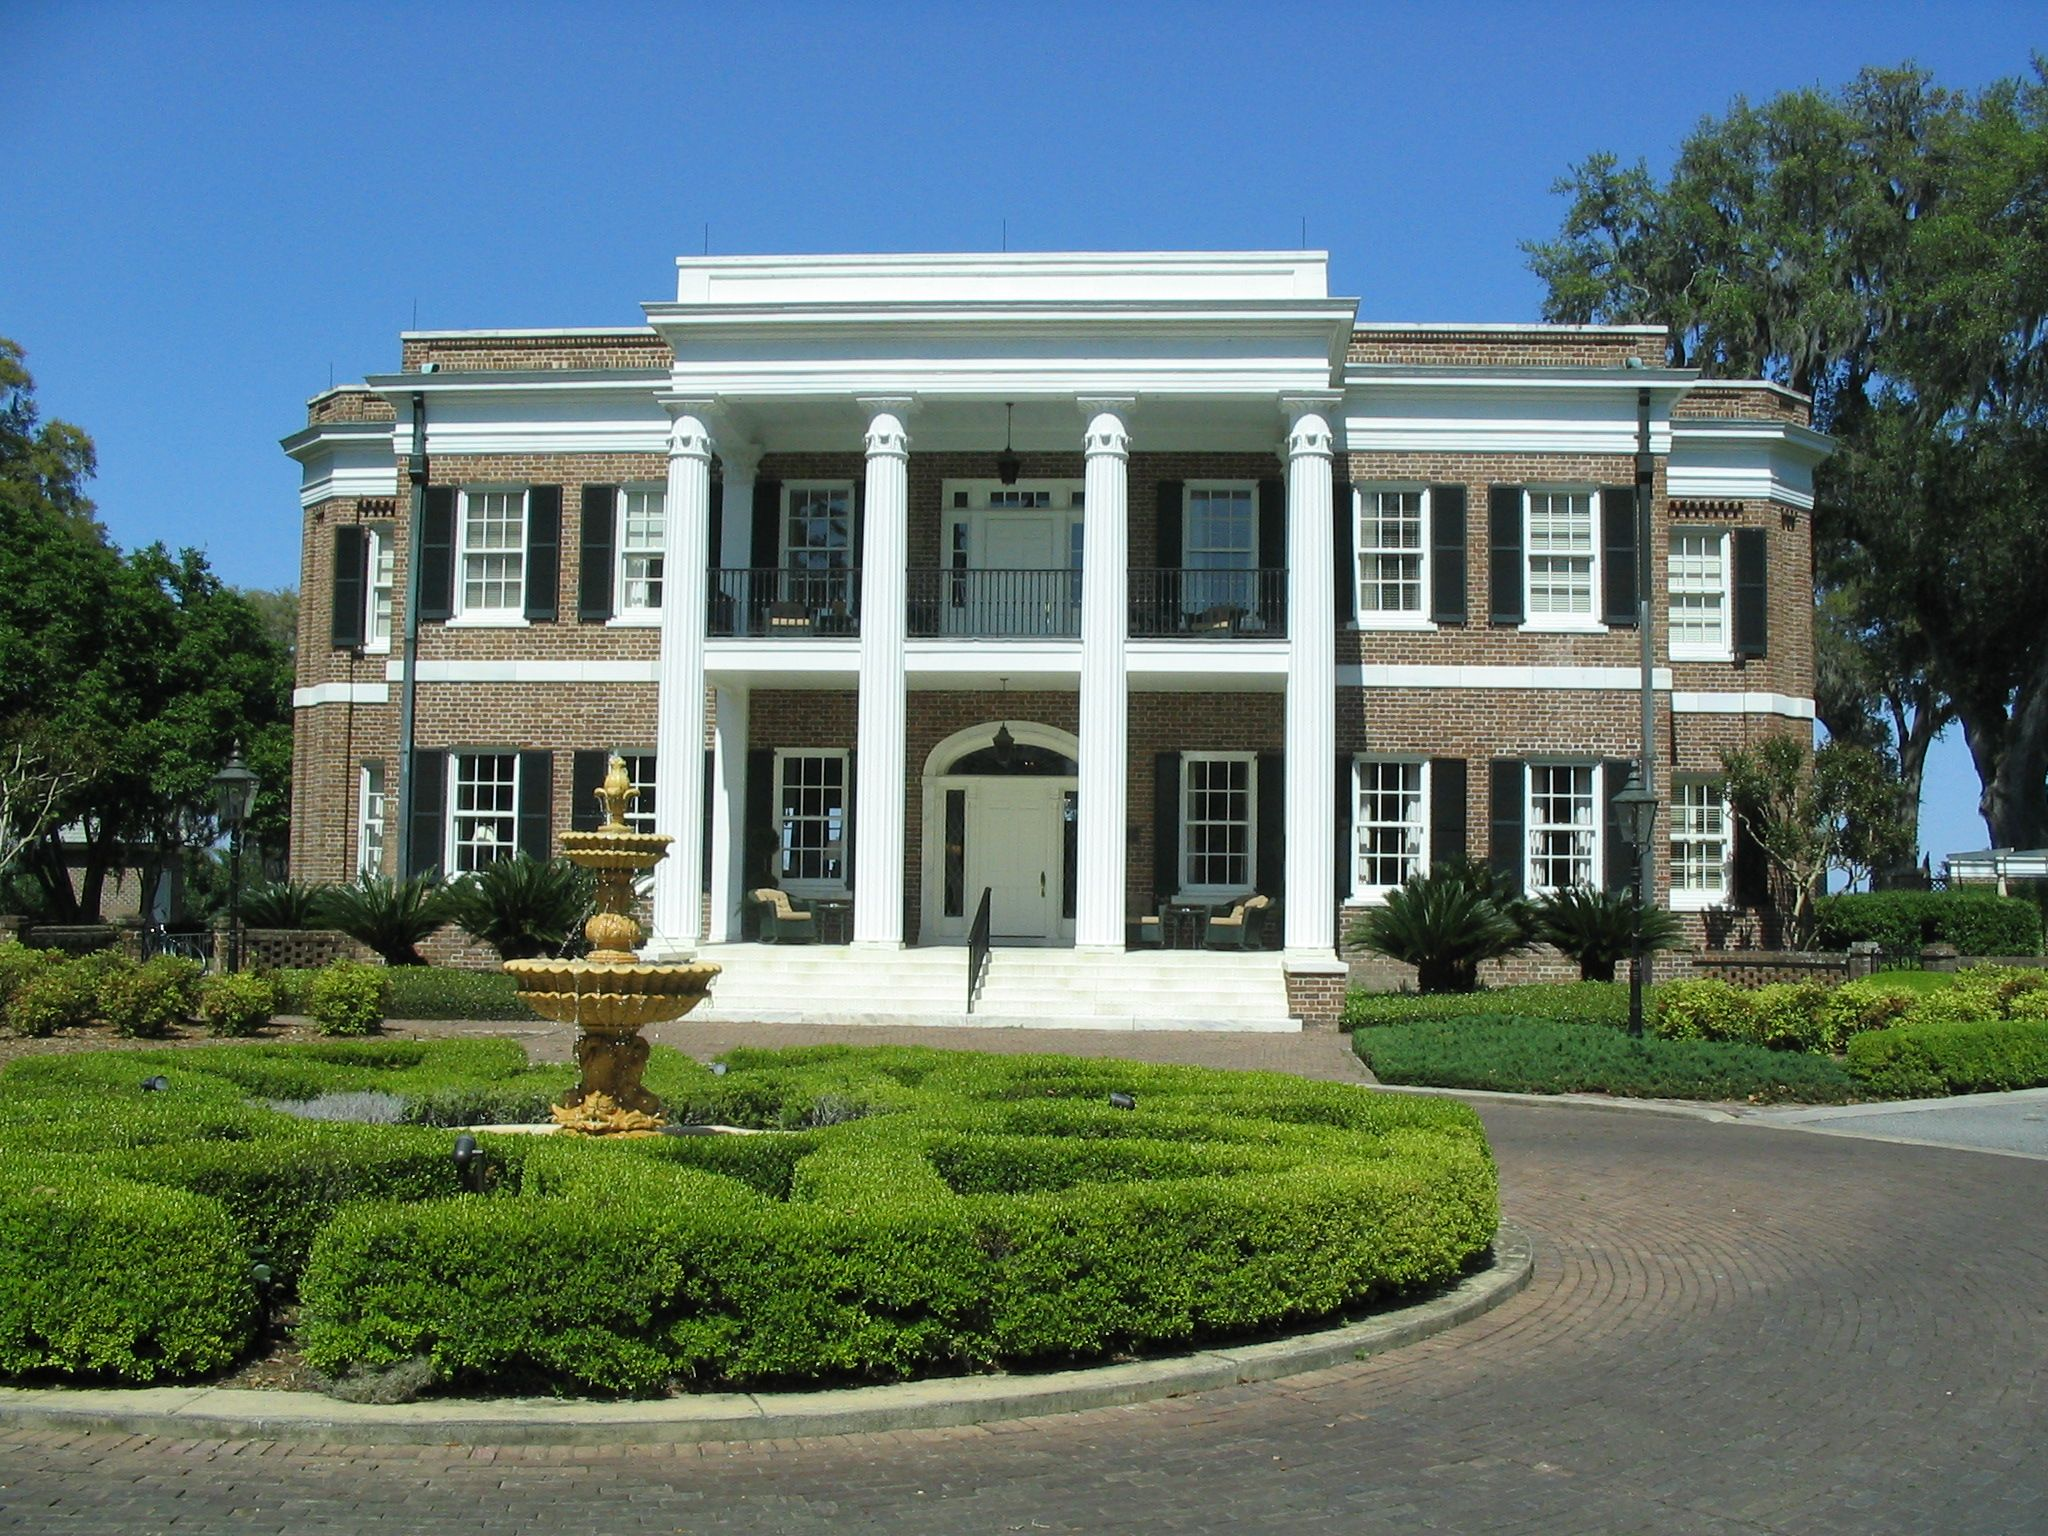 Henry Ford mansion at the Ford Plantation in Richmond Hill